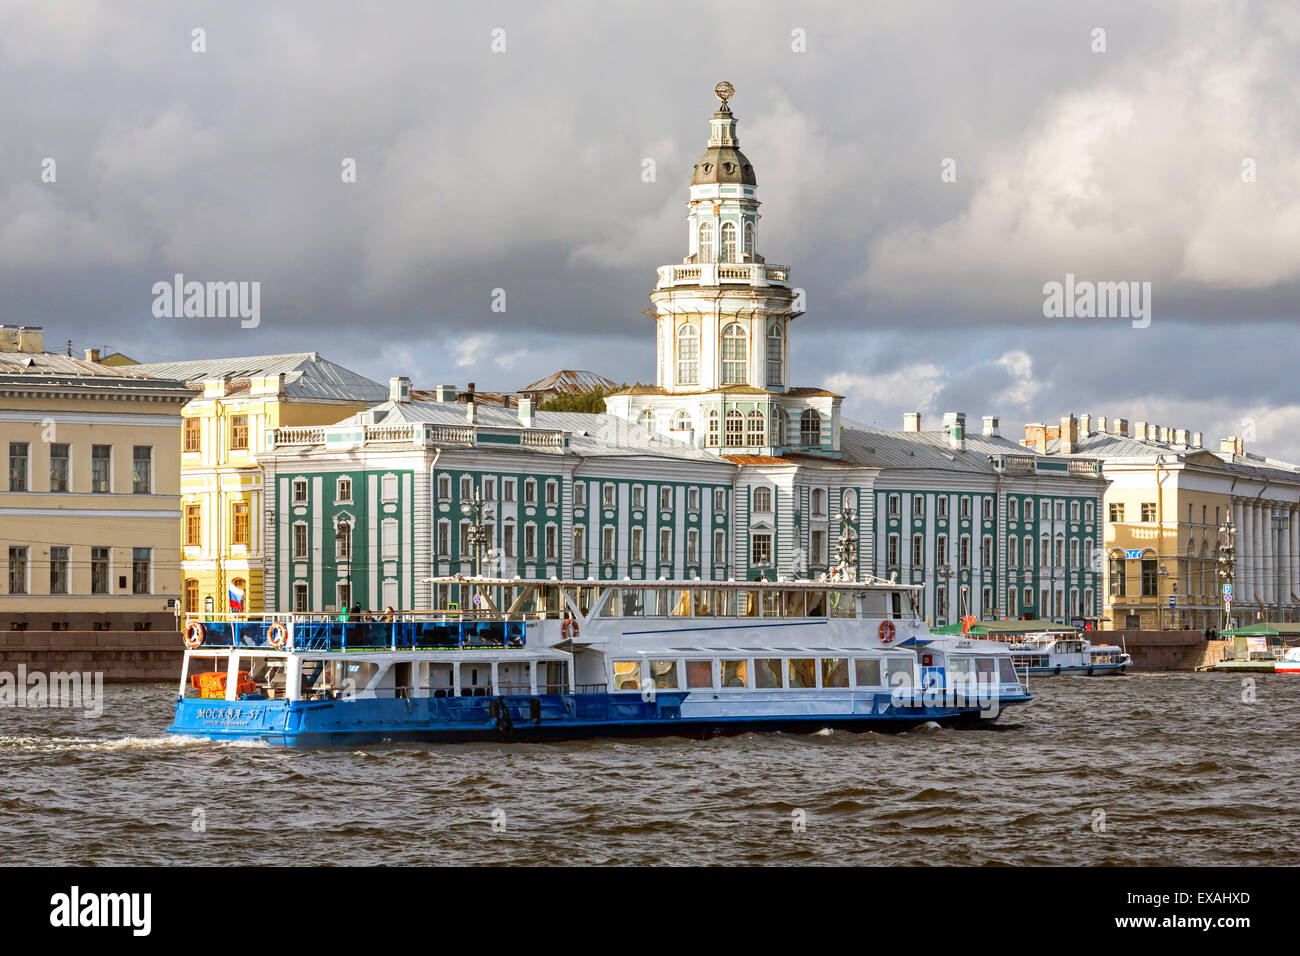 Building of the first Russian museum Kunstkamera (Kustkammer) in St. Petersburg, Russia, Europe - Stock Image